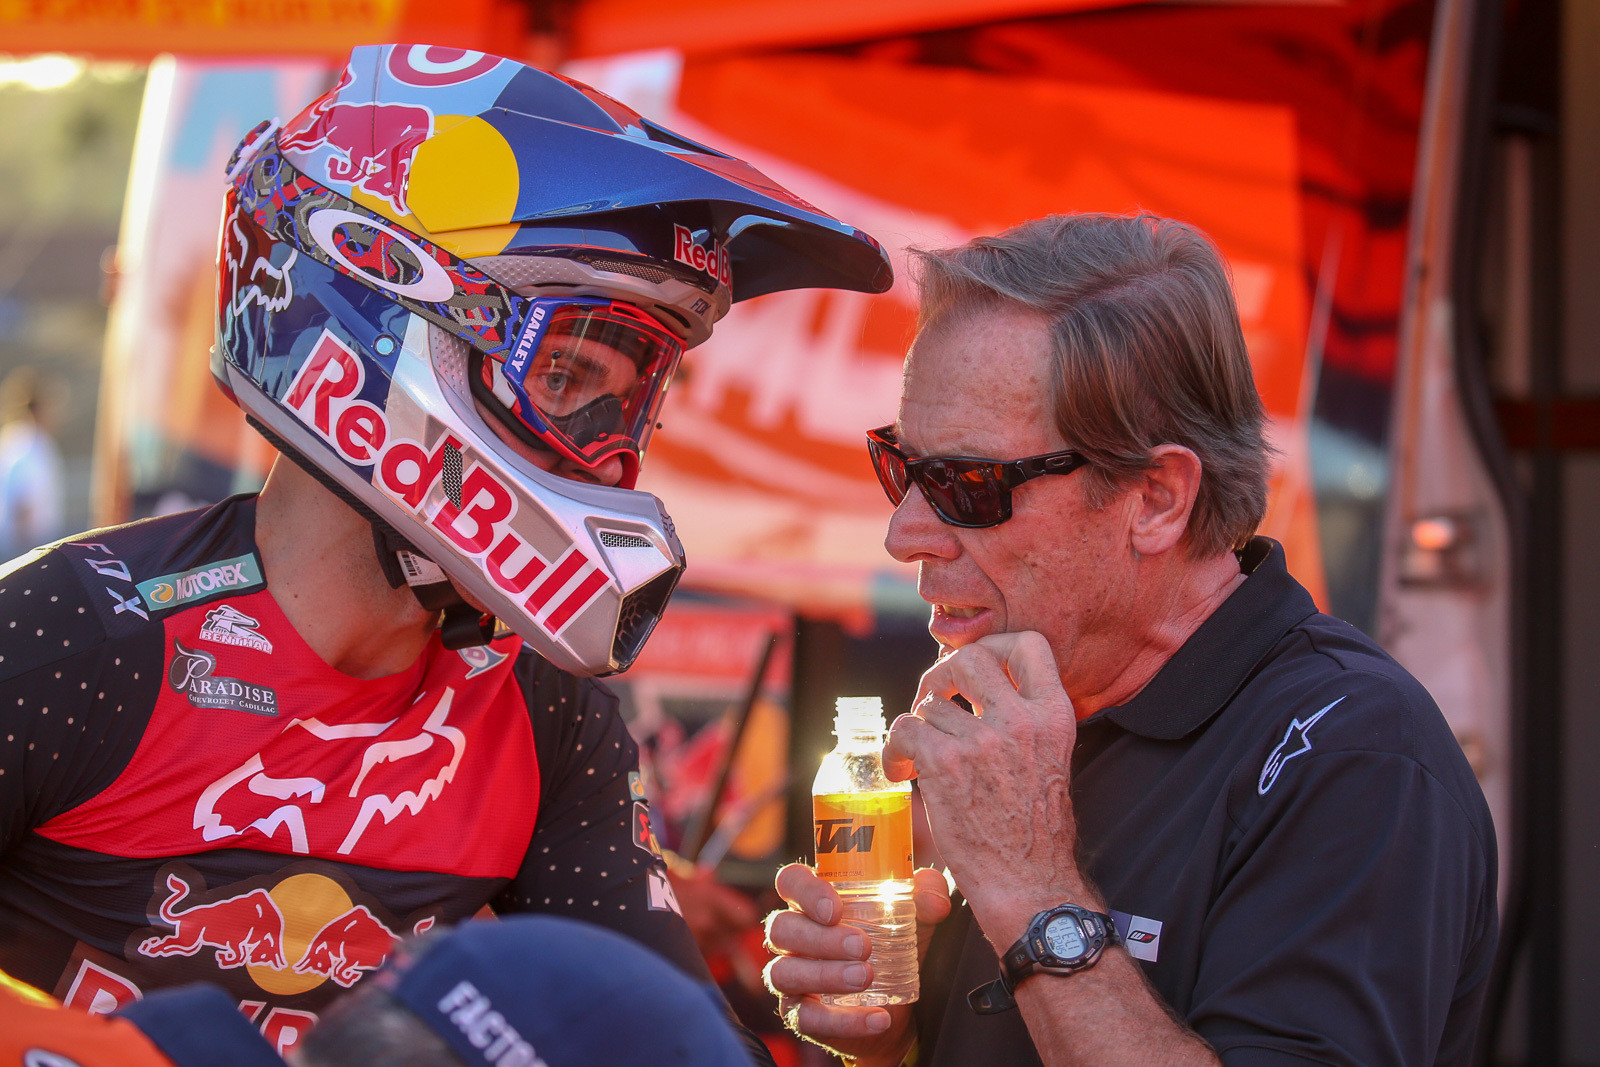 It was fun to see Ryan Dungey and Roger DeCoster paired up again, and they were as serious as ever about trying to take the win here.